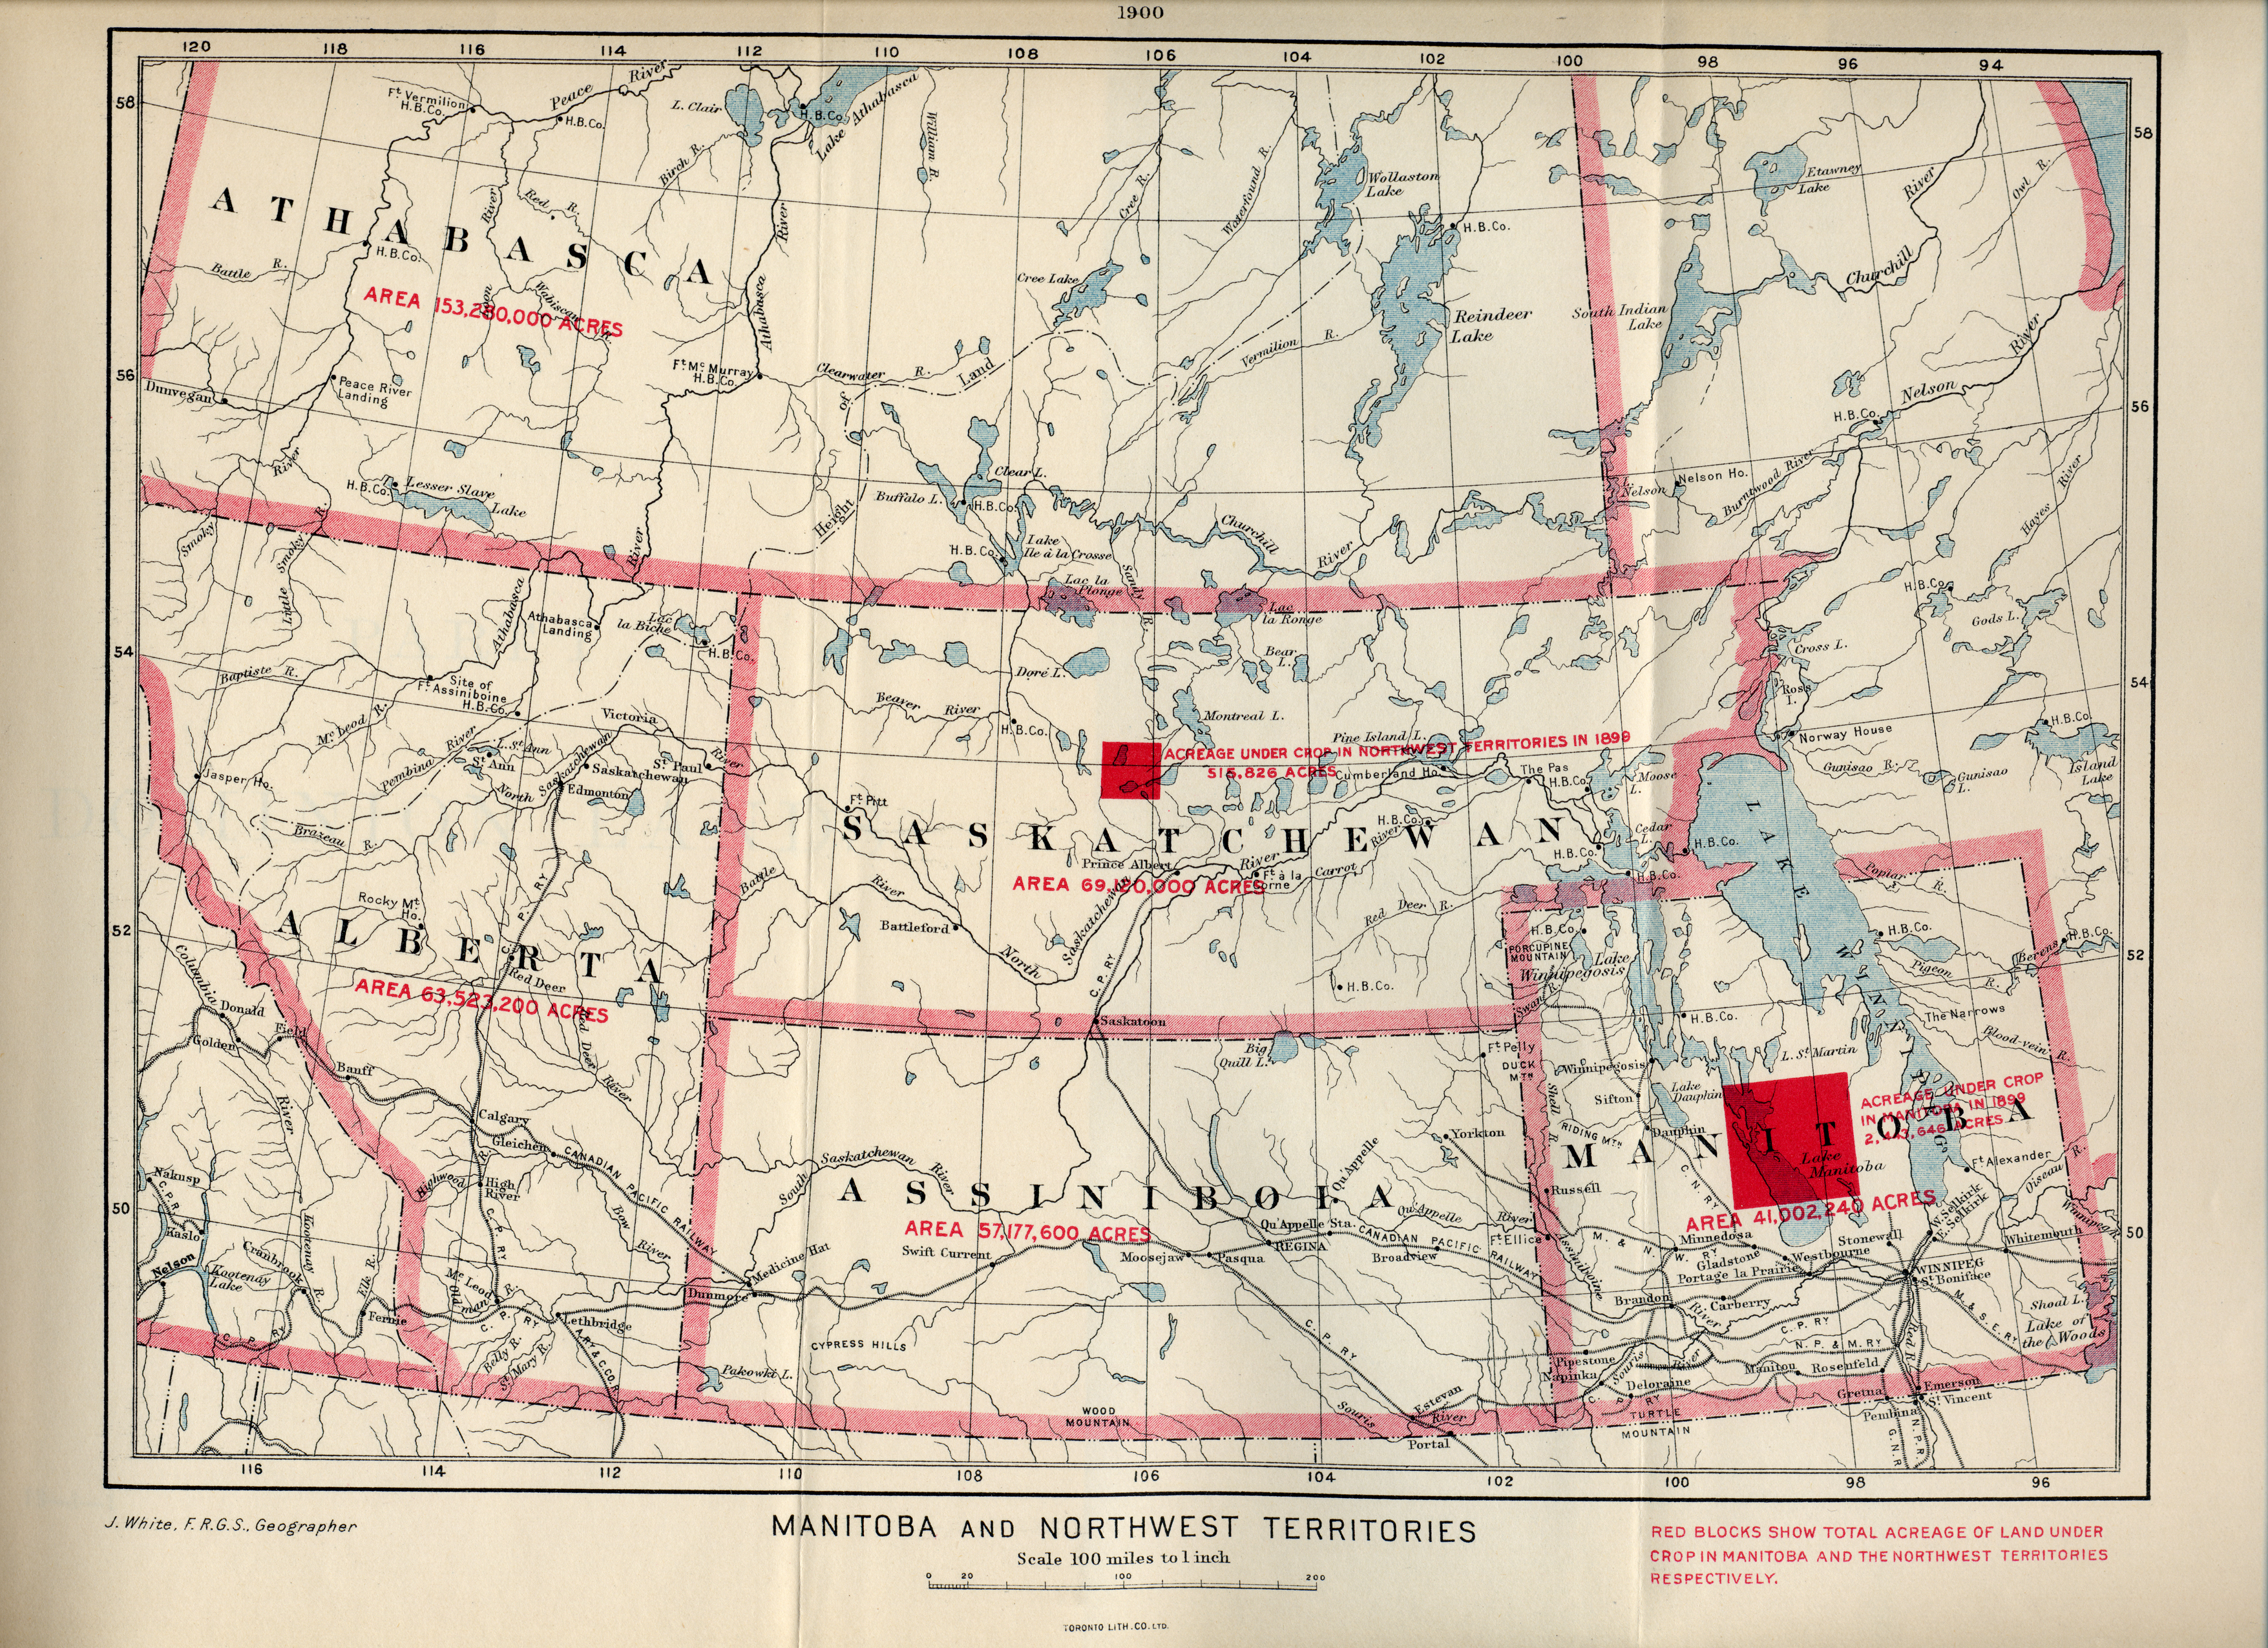 Map Of Canada 1900.File Manitoba And Northwest Territories 1900 Jpg Wikimedia Commons